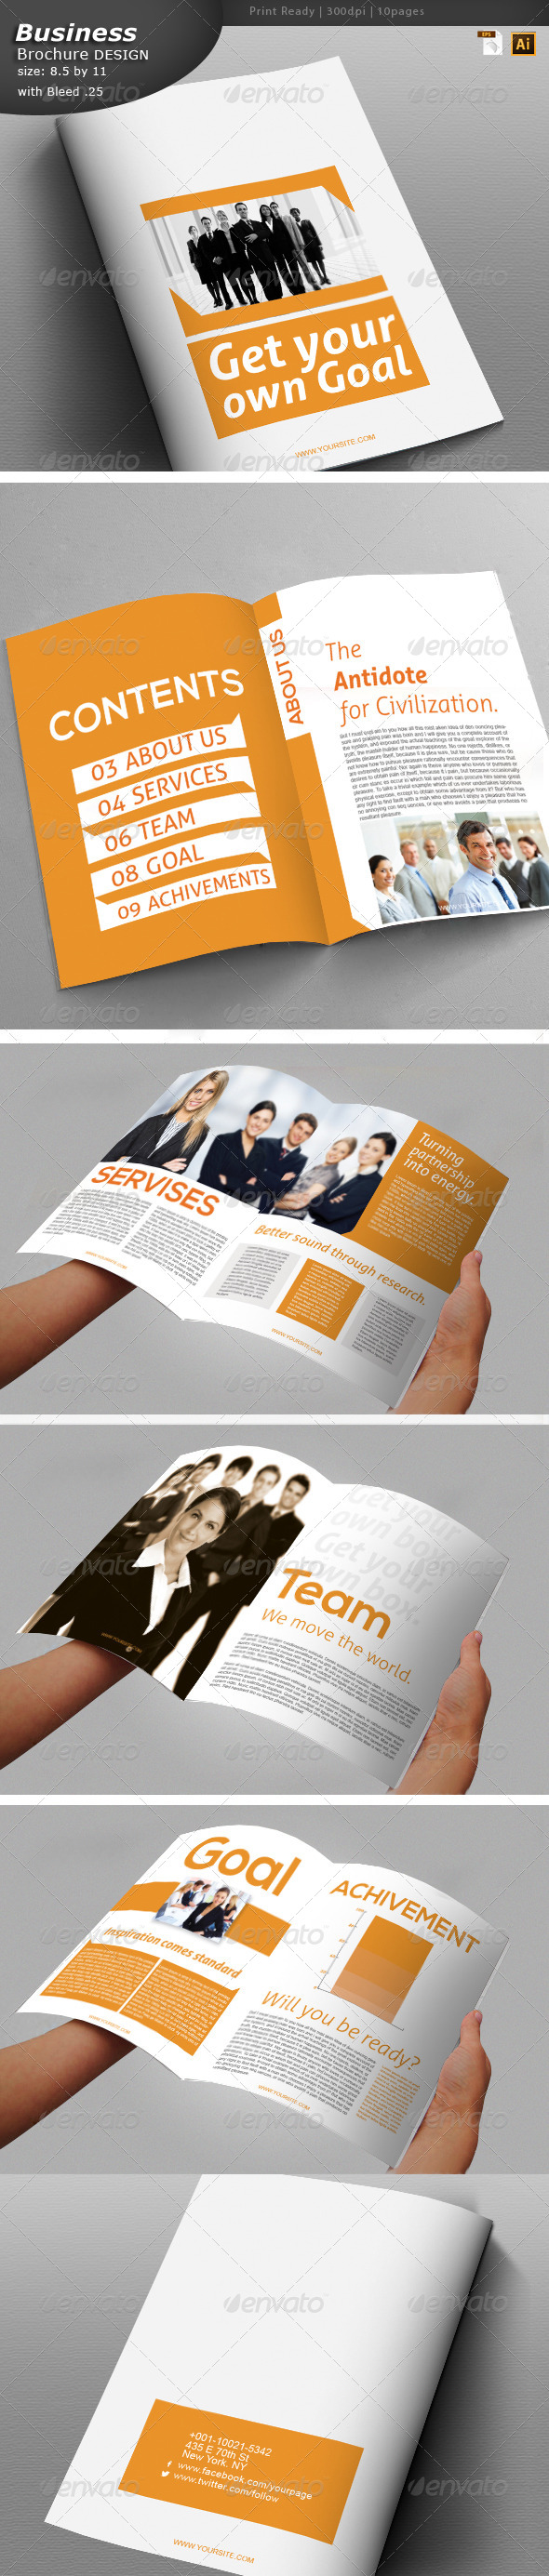 GraphicRiver Office Brochure Design 6111432